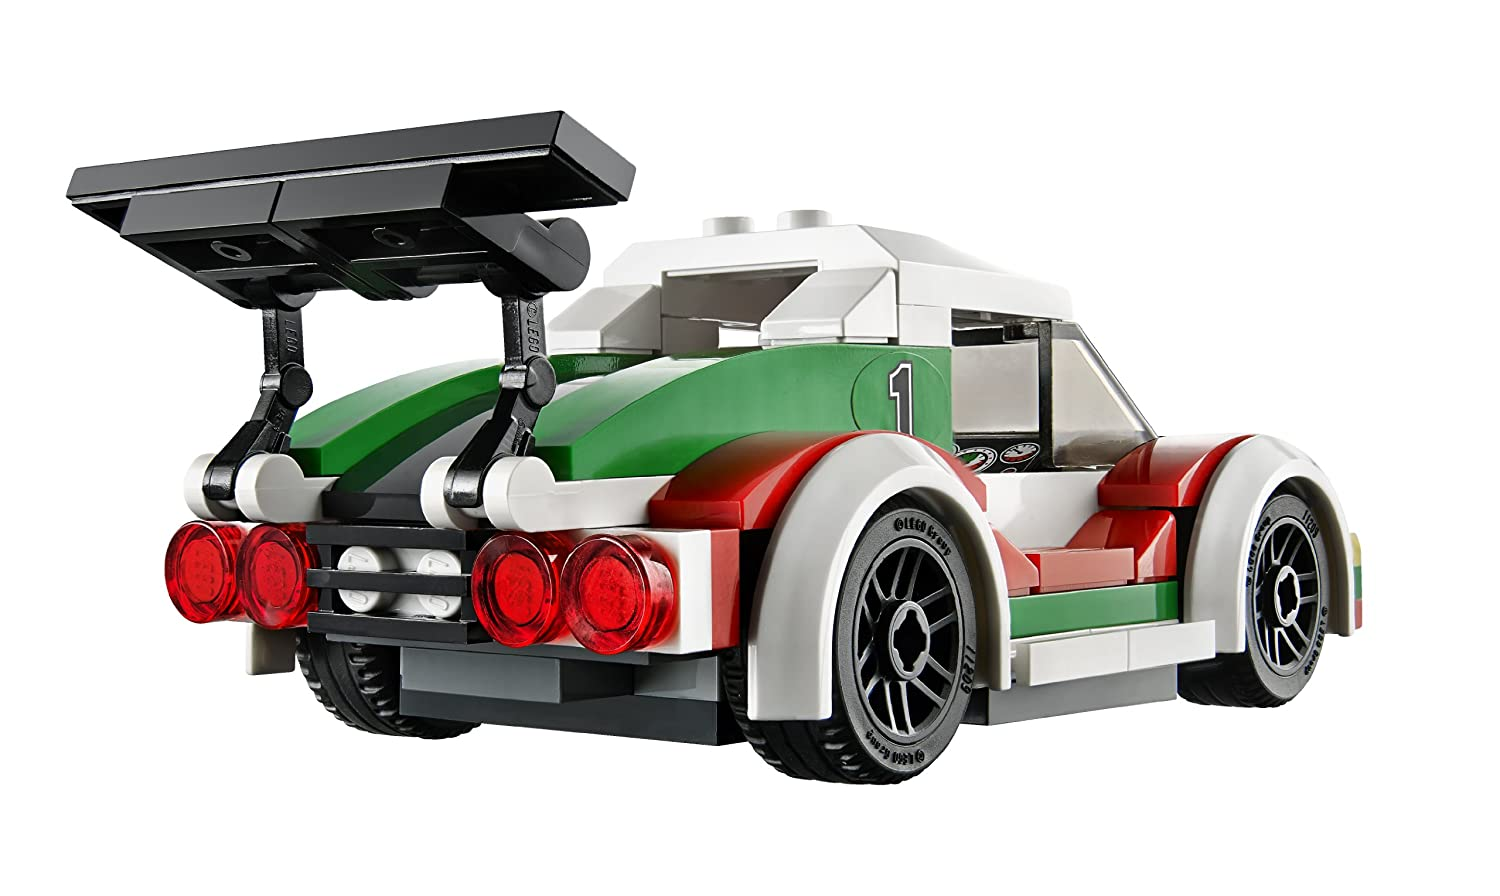 Amazon.com: LEGO City Great Vehicles 60053 Race Car: Toys & Games